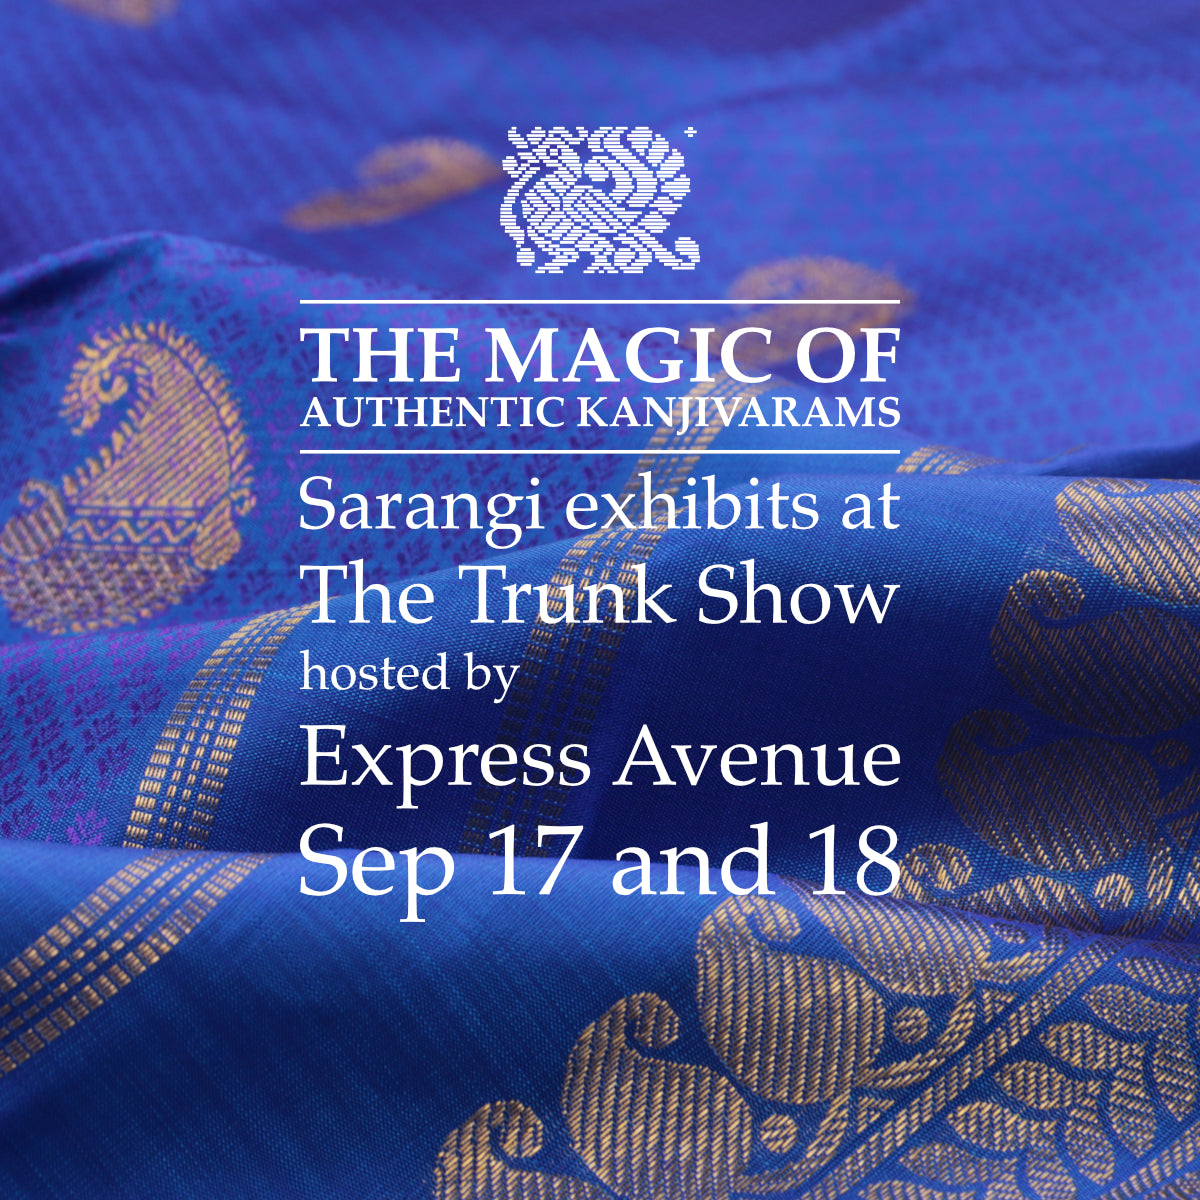 Sarangi to exhibit at the Trunk Show by Express Avenue